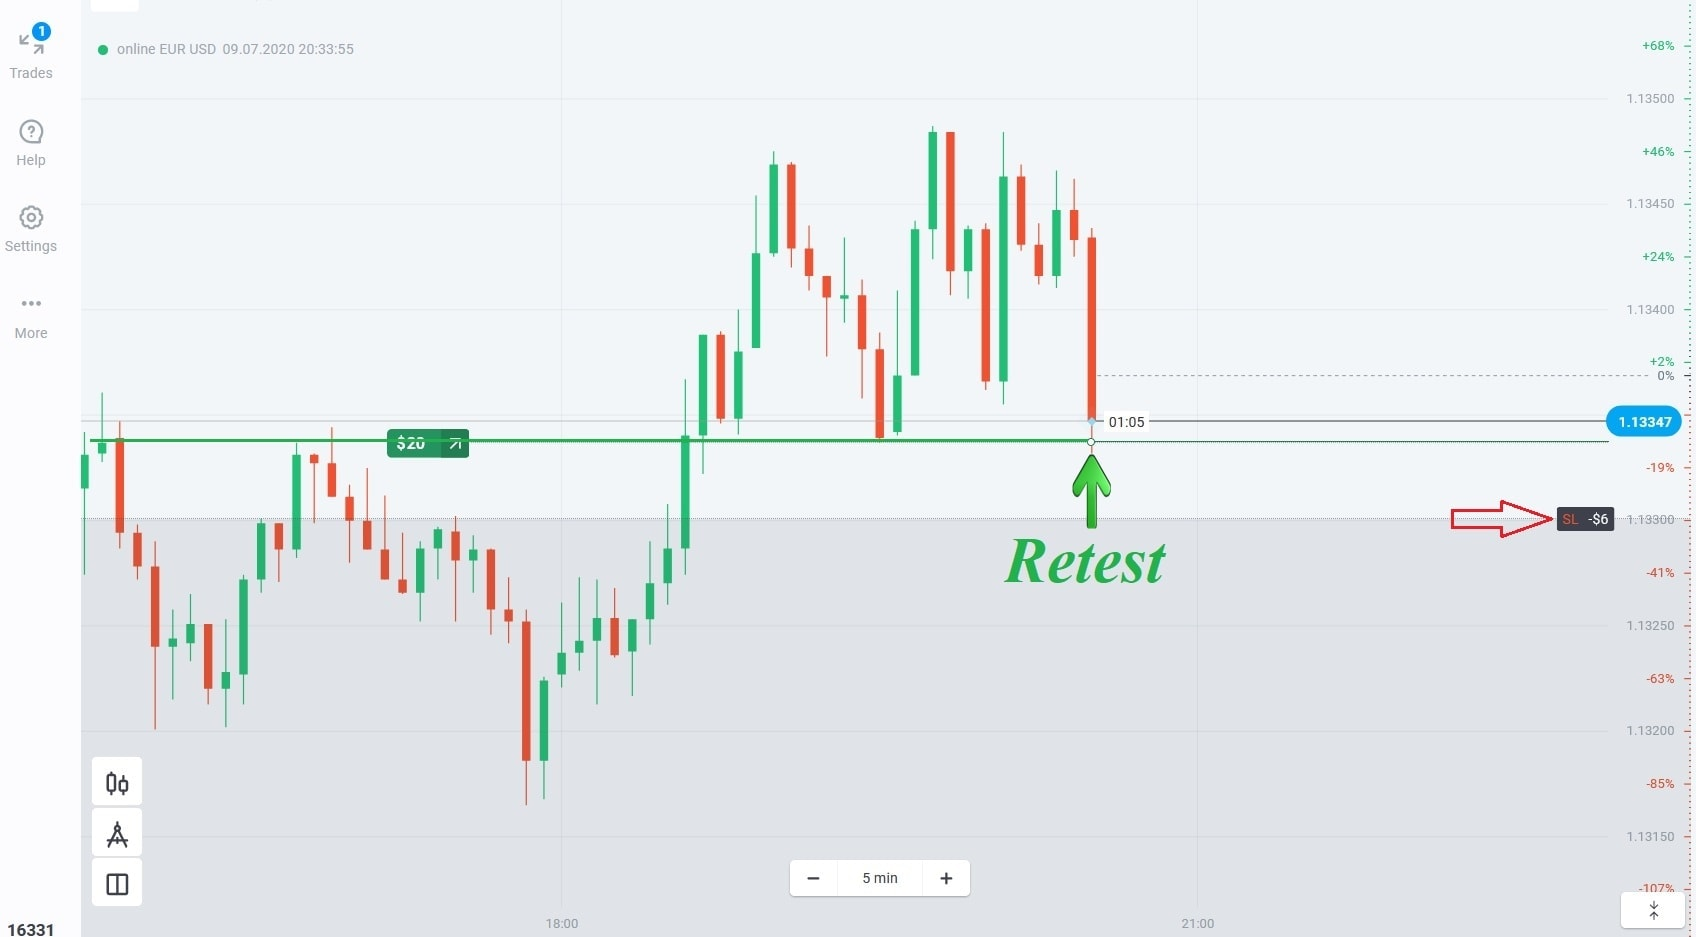 The price retests the resistance